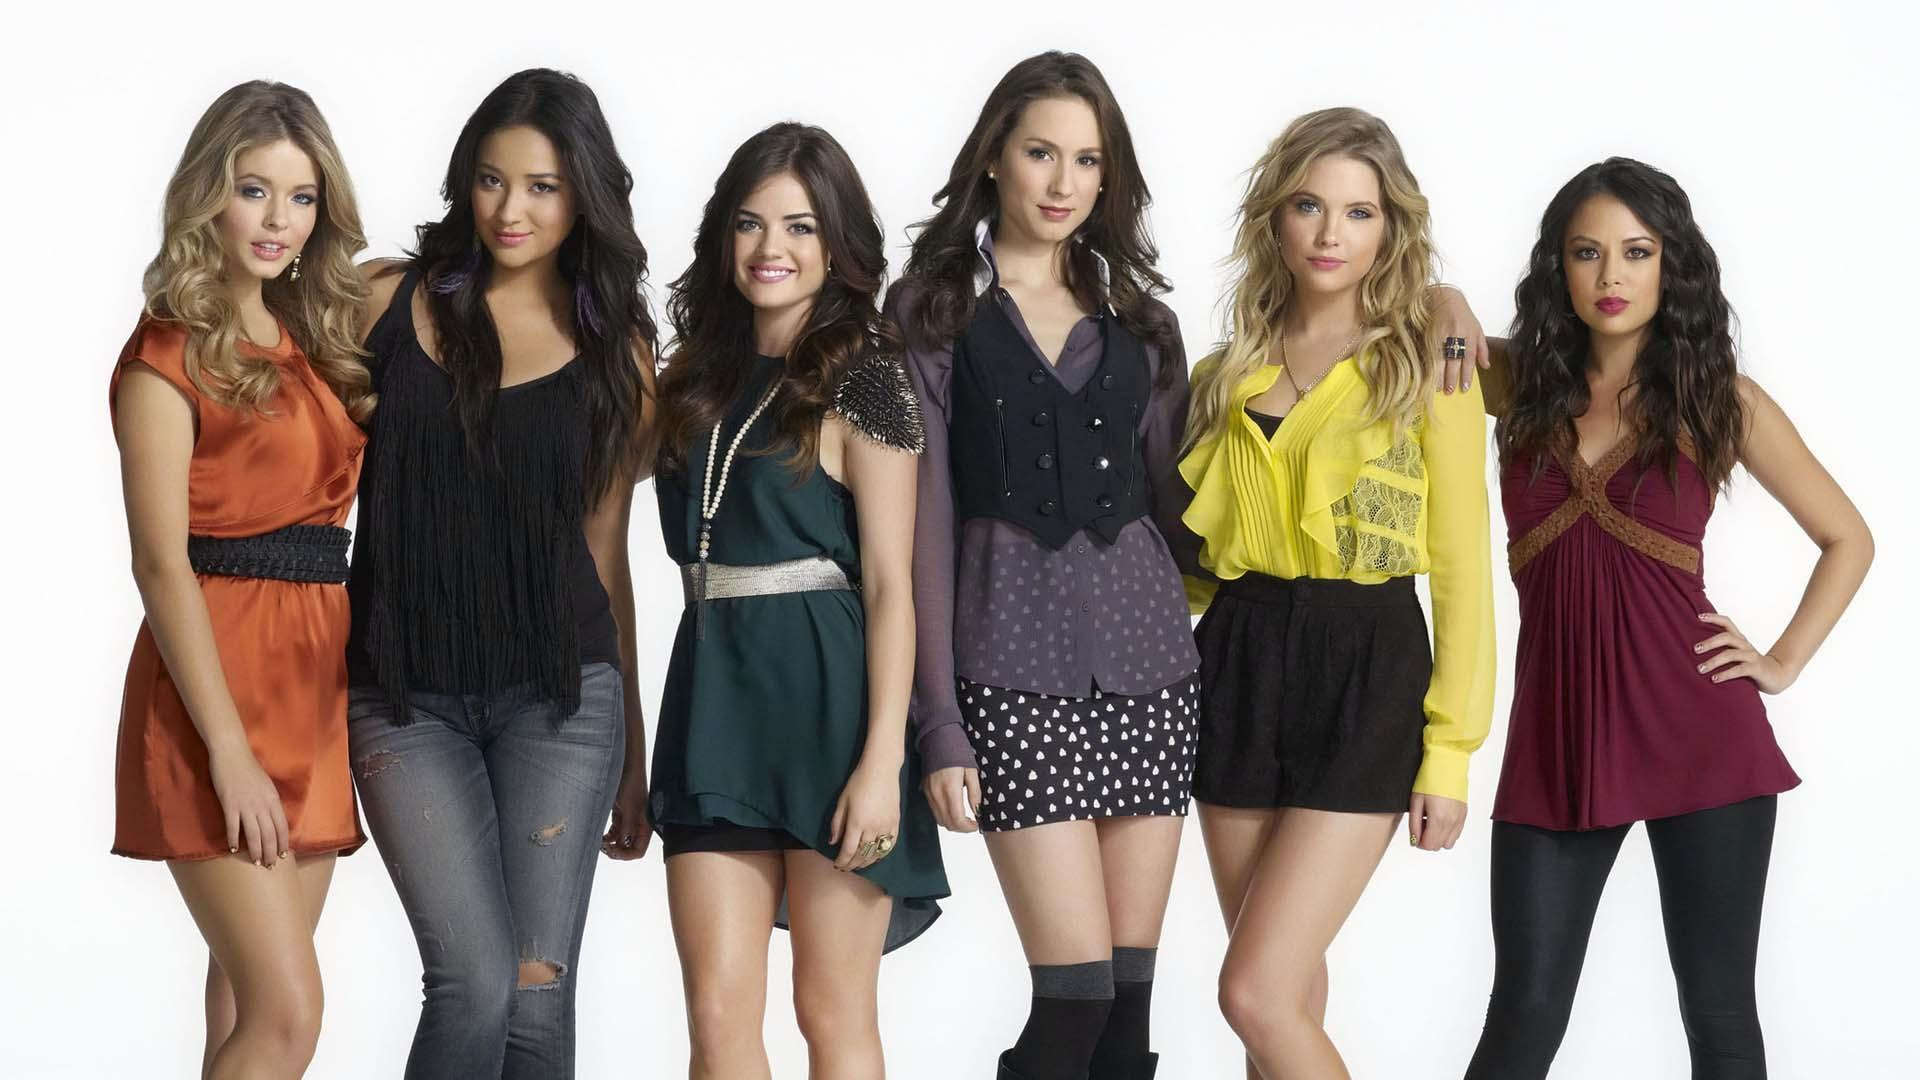 Which PLL Girl?